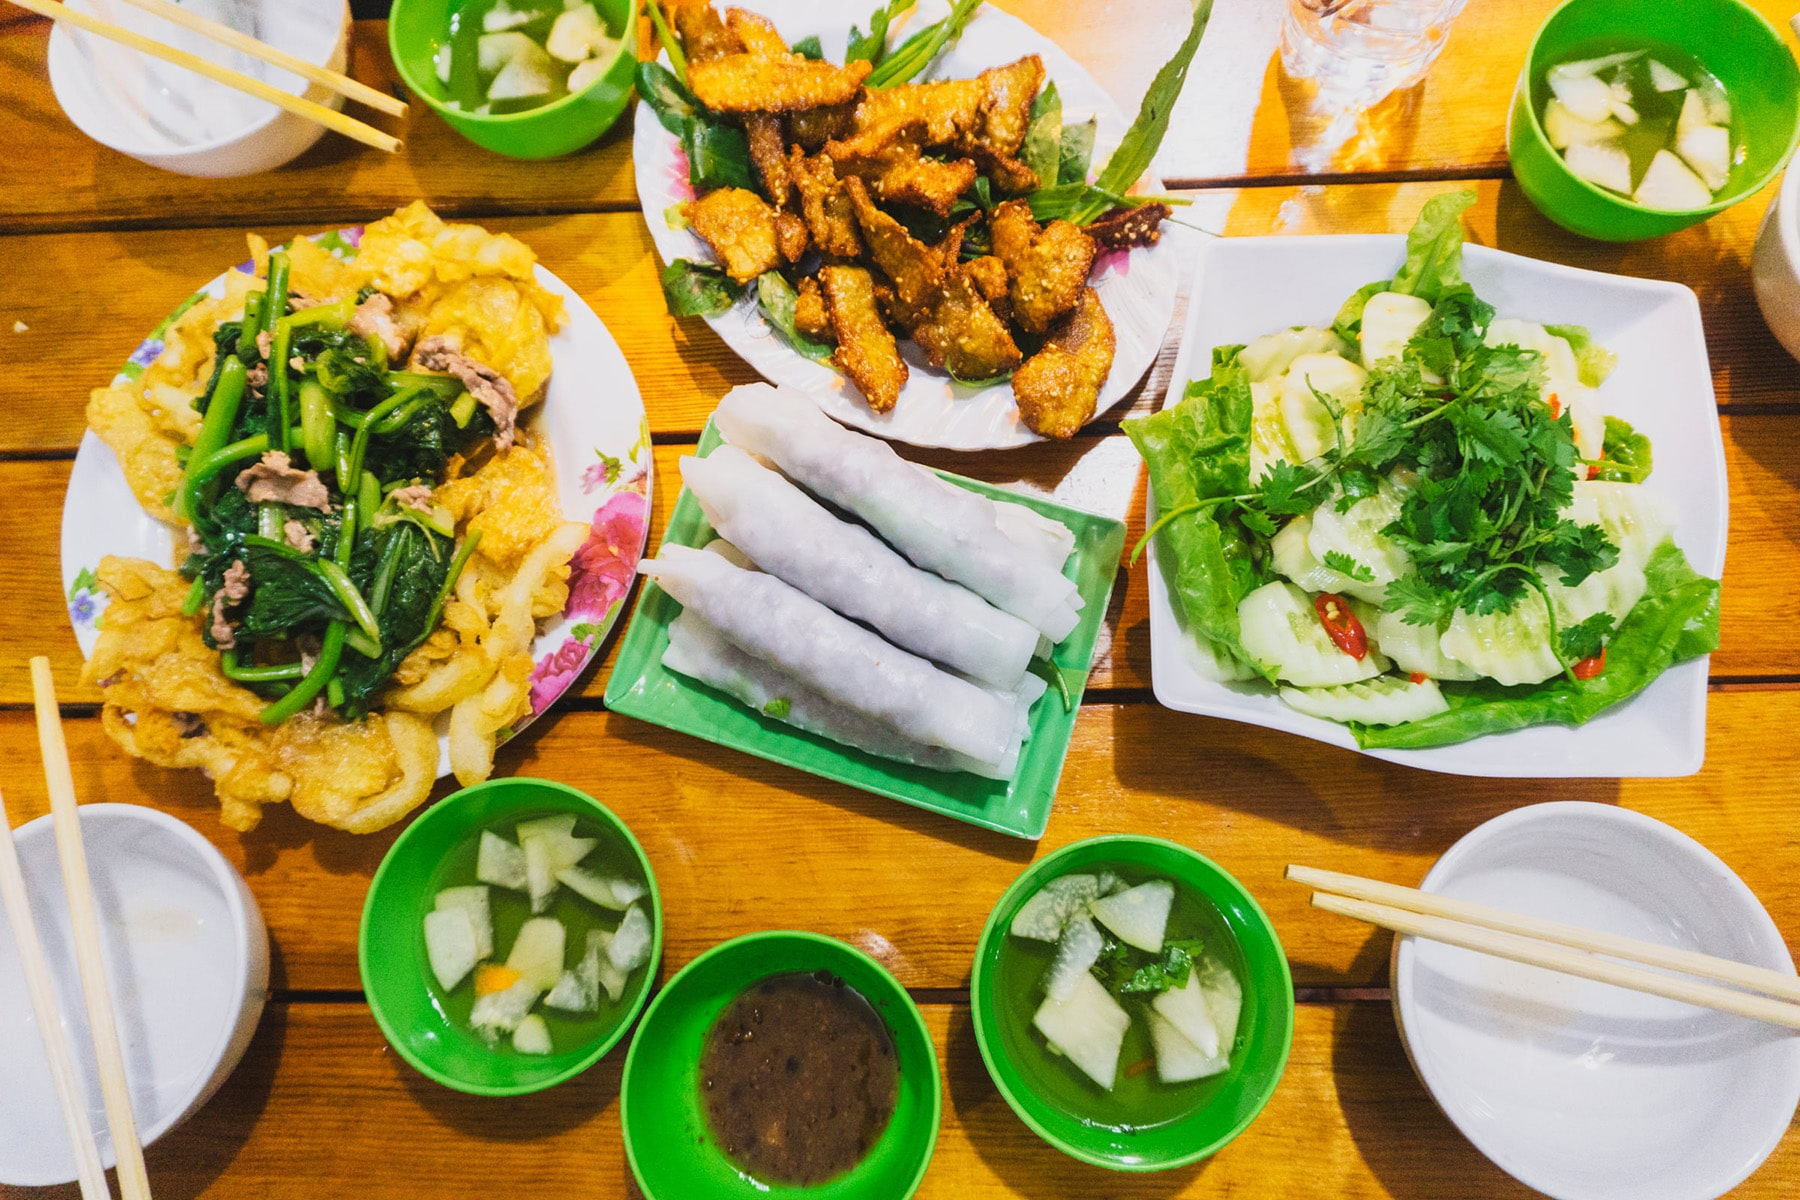 Hanoi After Dark - Hanoi Food Tour by Vespa